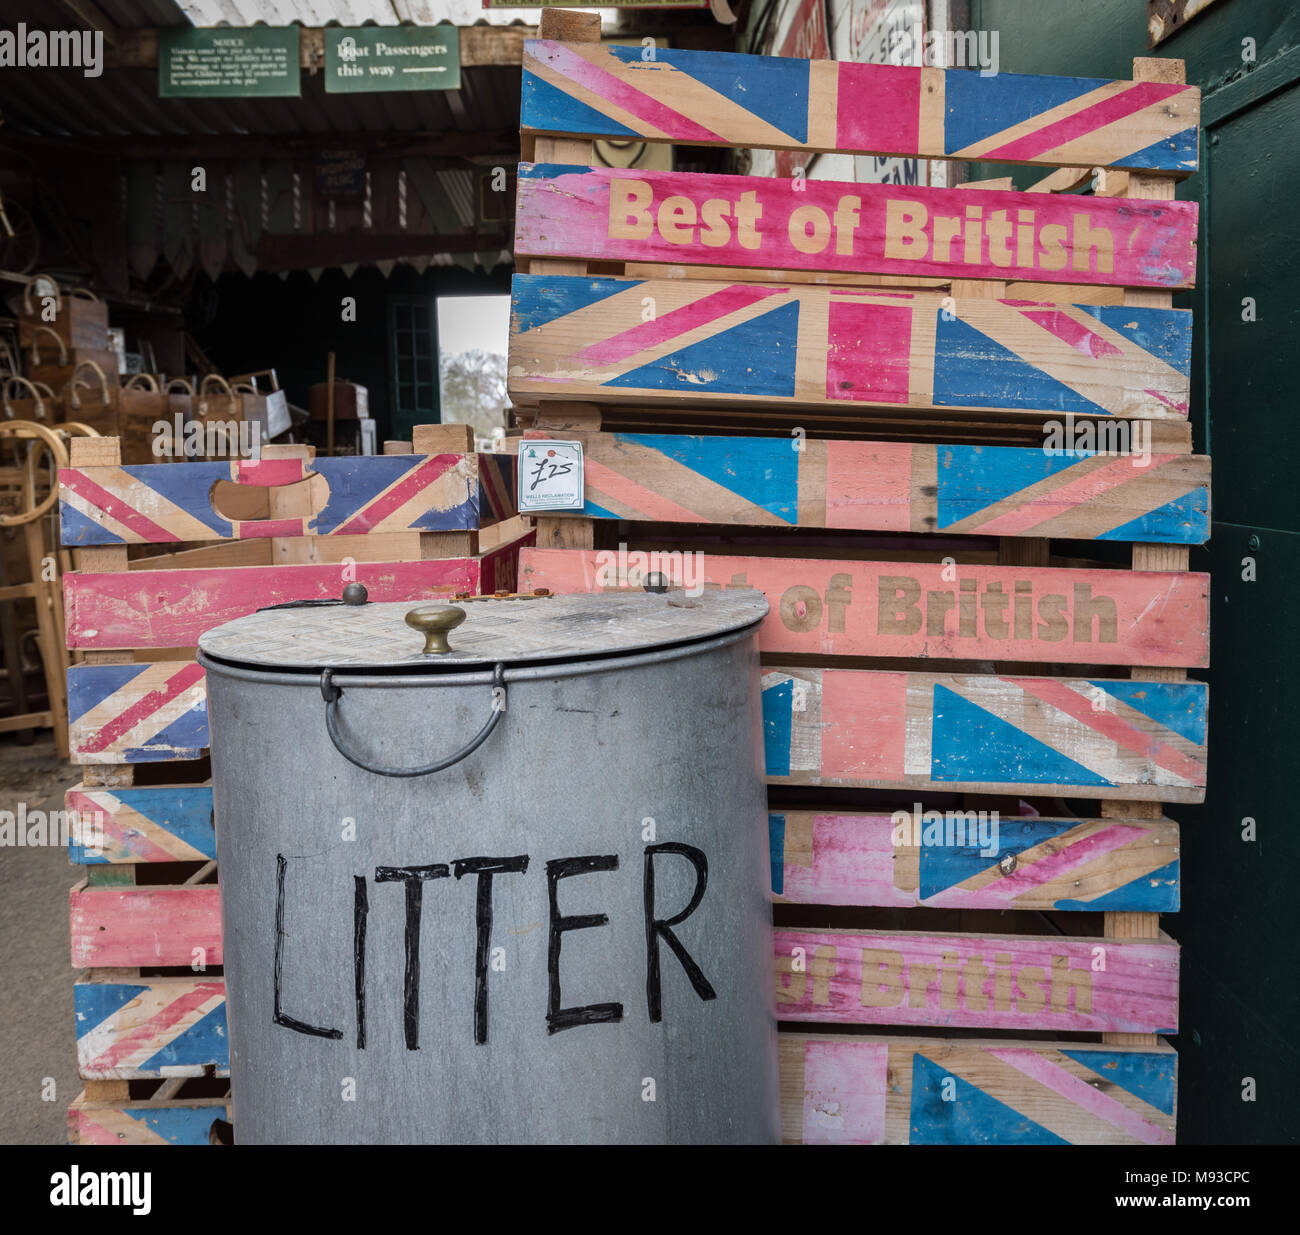 A stack of 'Best of British' wooden vegetable crates stand next to a metallic litter bin. Glastonbury, Somerset. Stock Photo